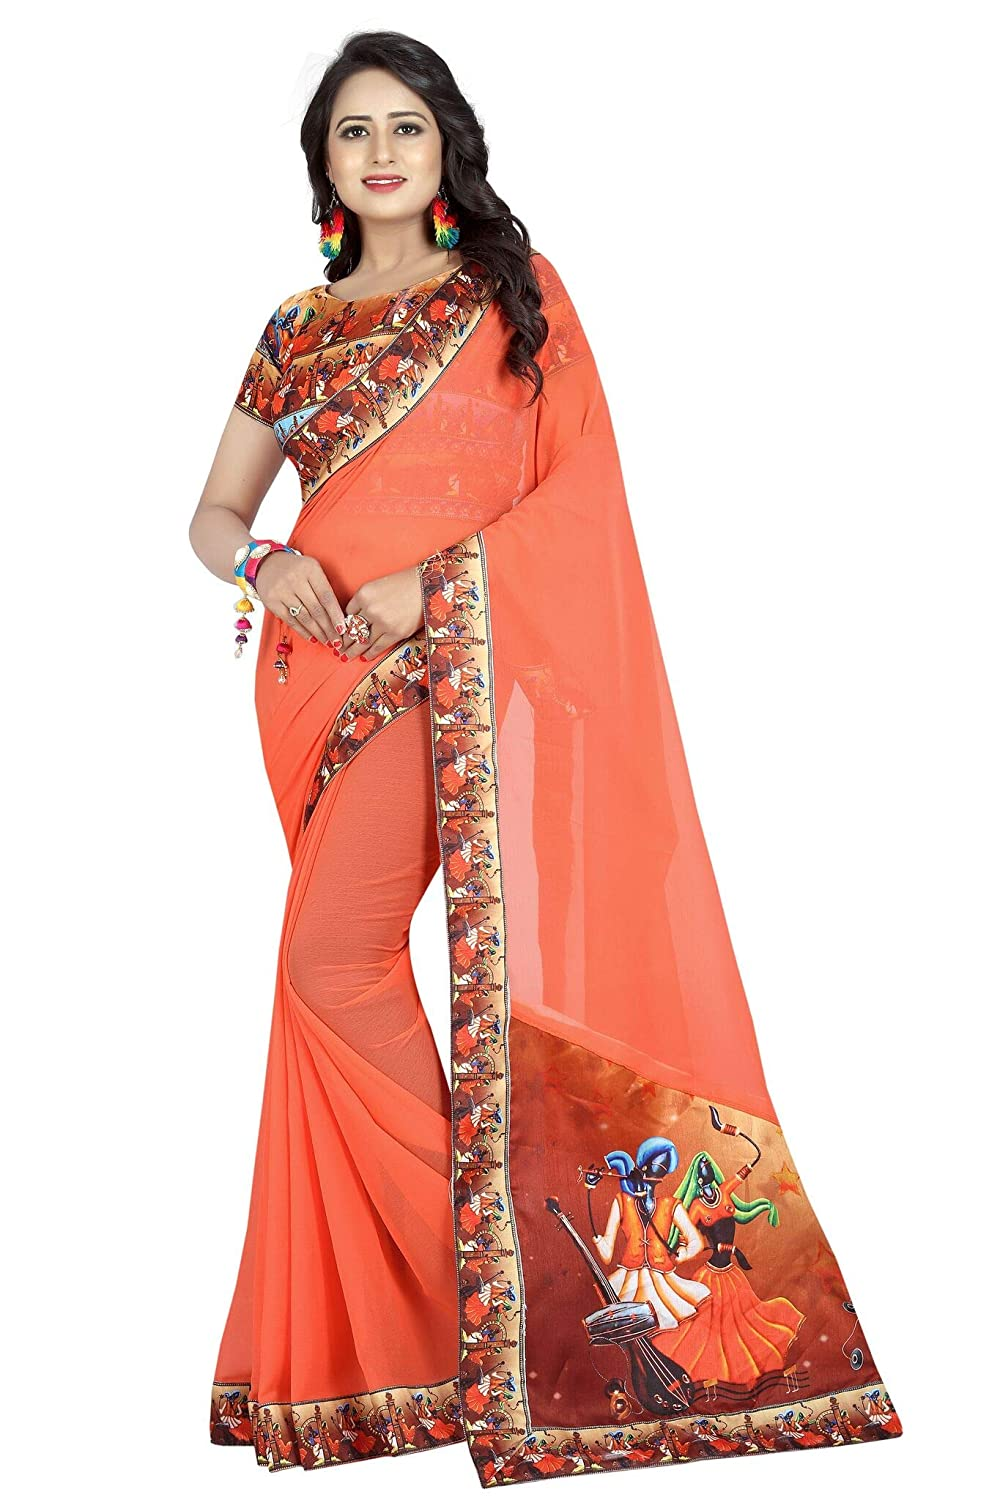 Shonaya Womens Fancy Chiffon Lace Border Saree Unstitched Blouse Piece (Orange) RUKMANI-7